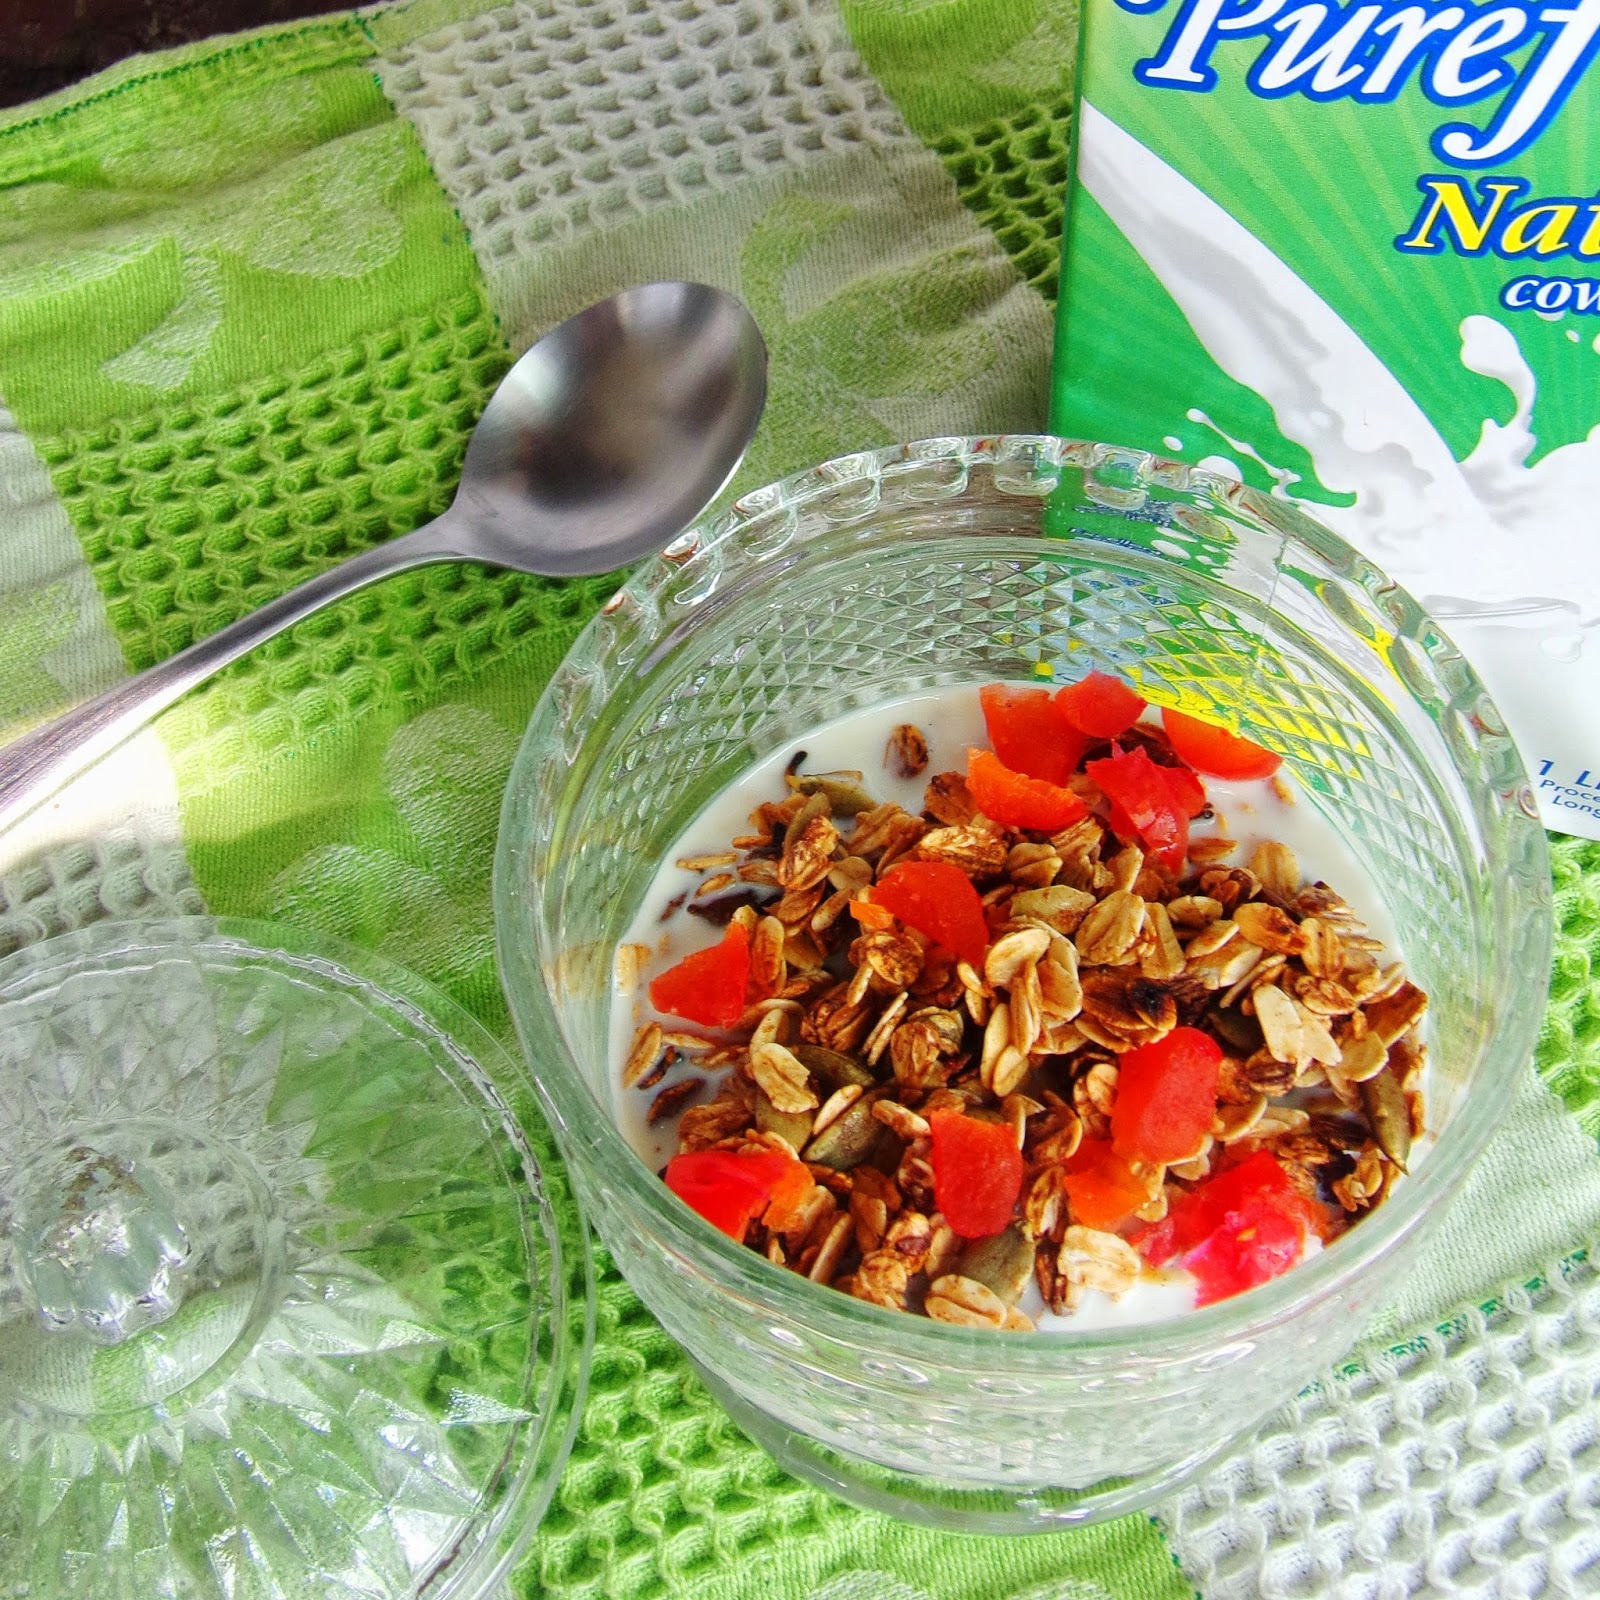 ranola recipes, homemade granola, healthy granola recipe, granola recipe healthy, best granola, homemade granola recipe, easy granola recipe